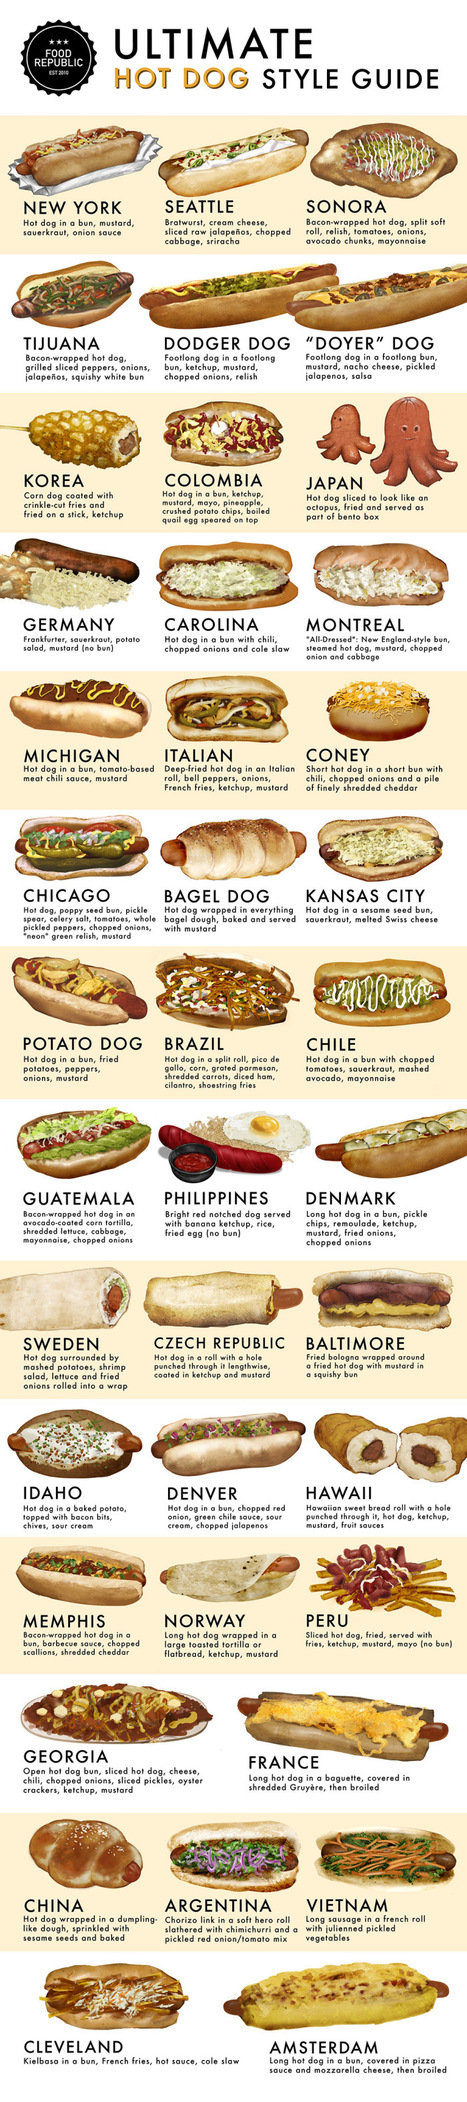 40 Ways The World Makes Awesome Hot Dogs | FCHS AP HUMAN GEOGRAPHY | Scoop.it